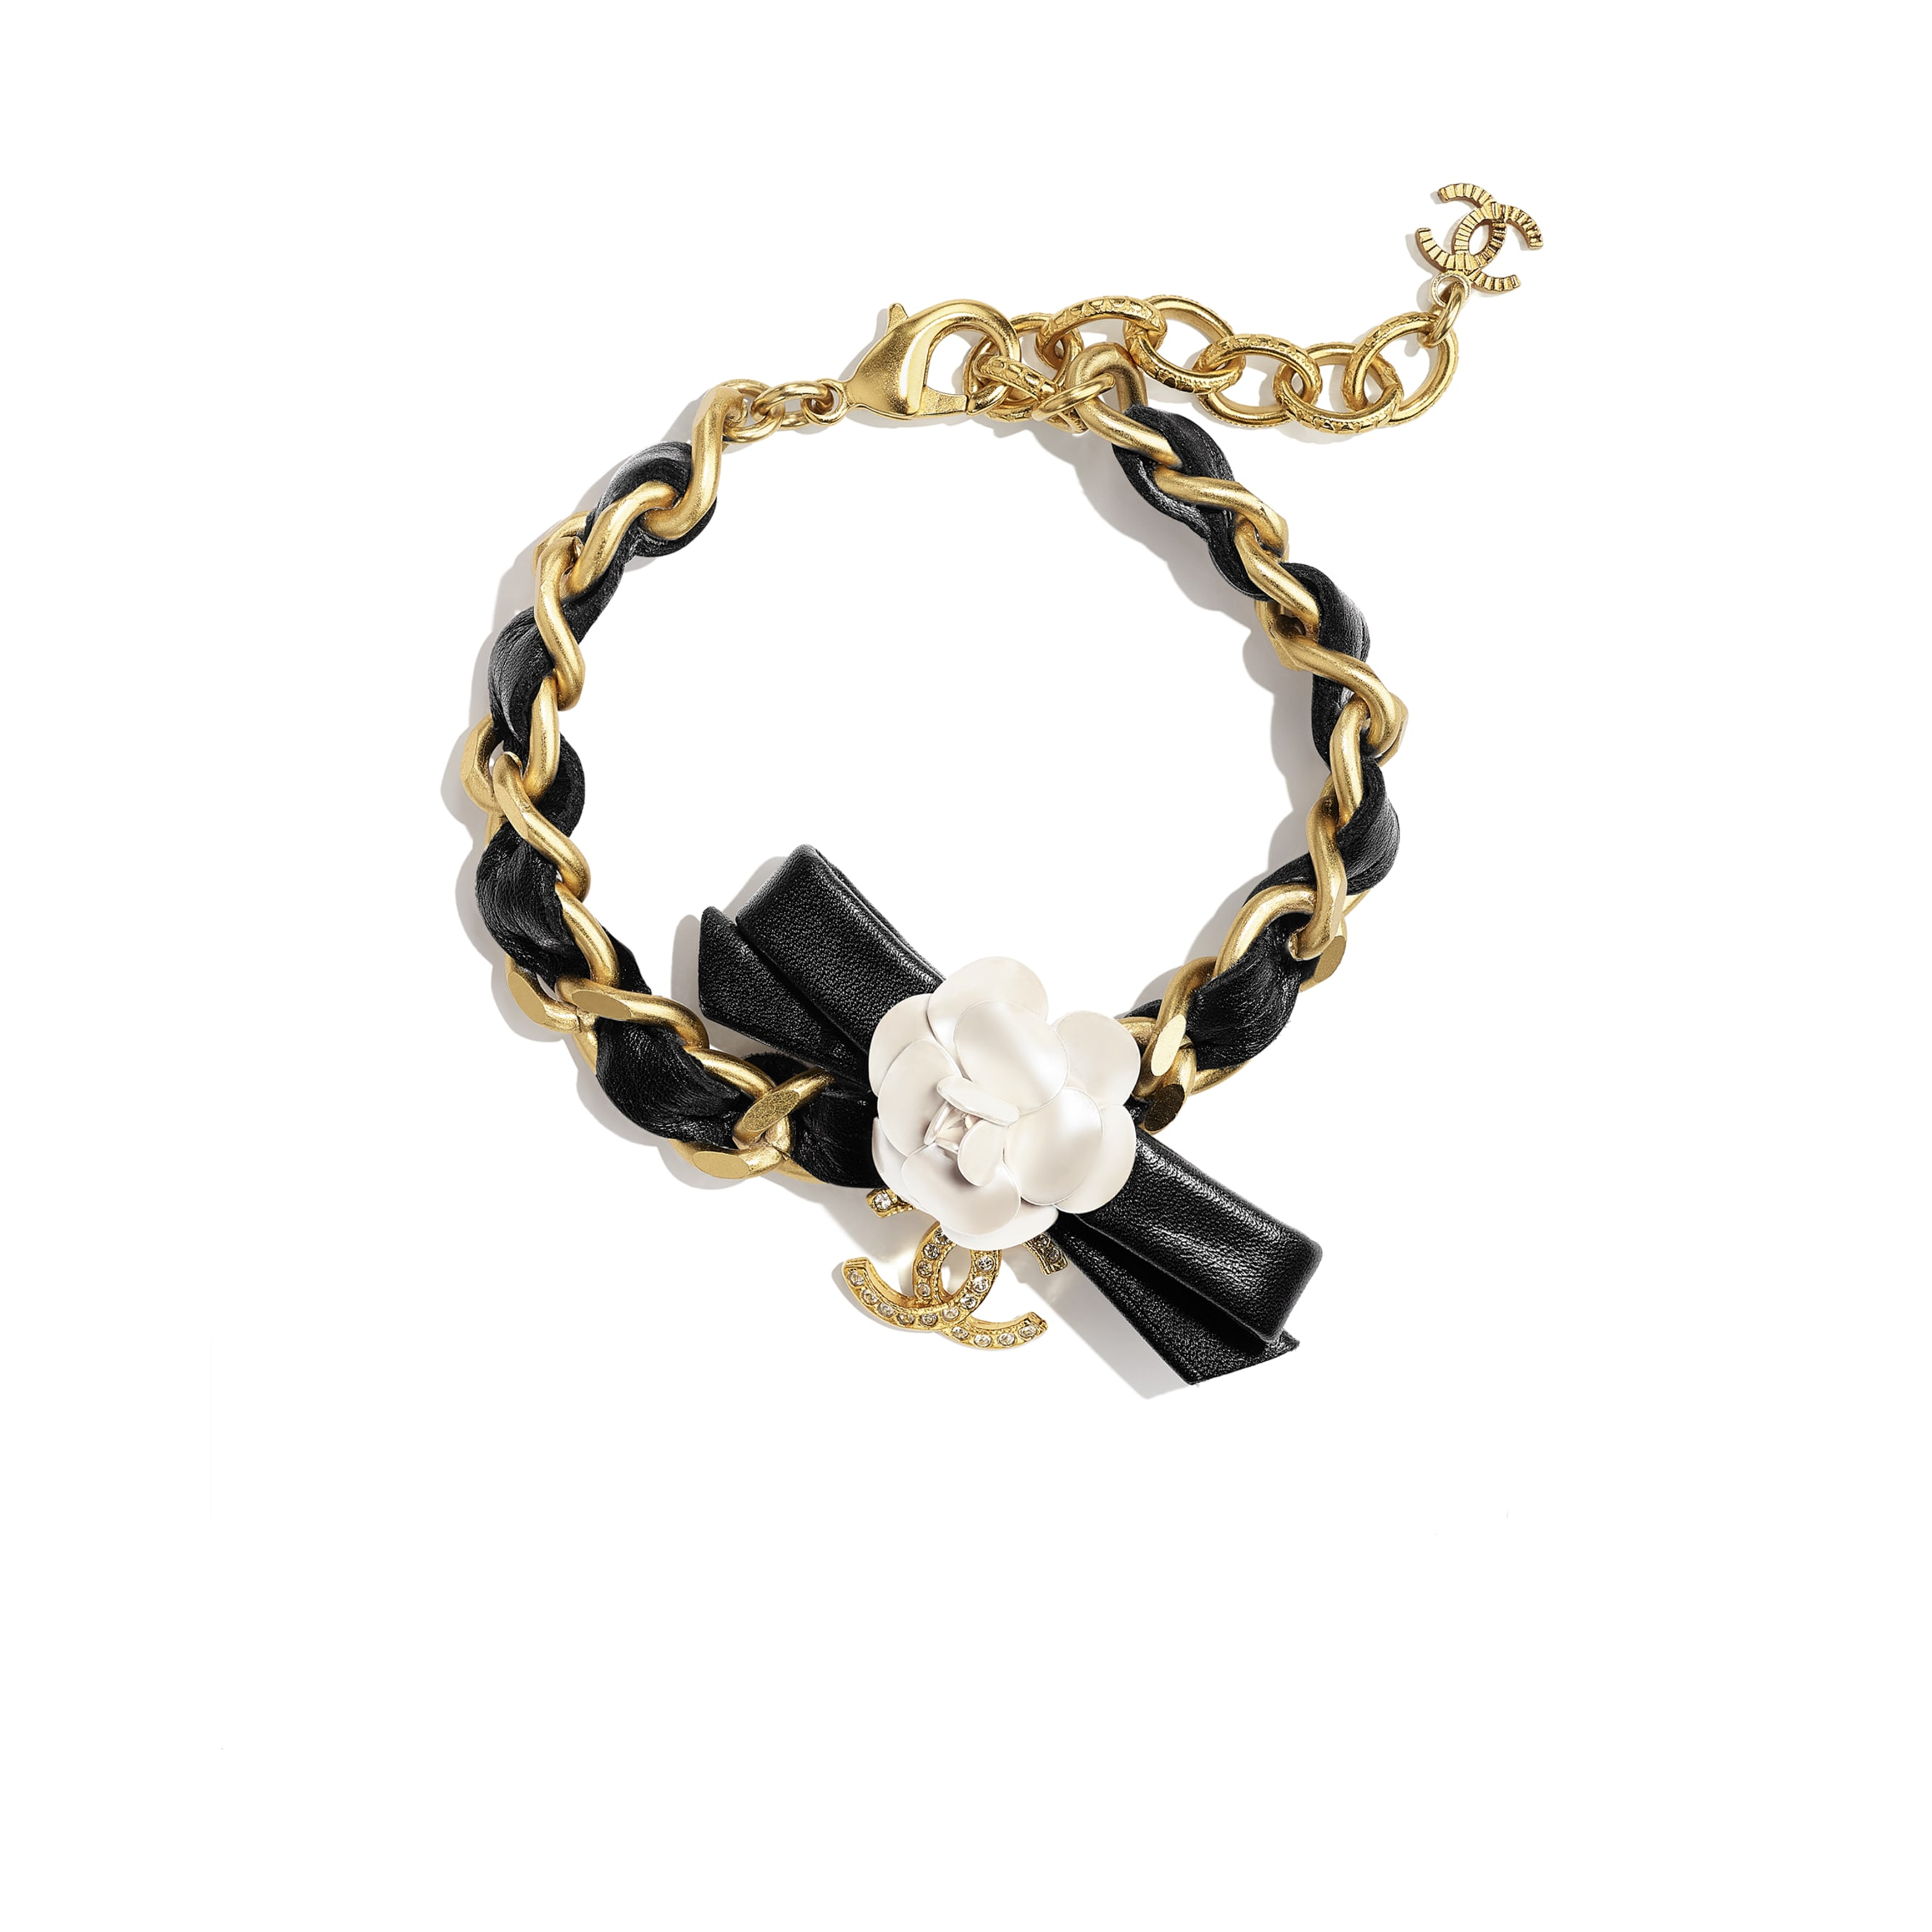 Bracelet - Gold, Pearly White, Black & Crystal - Metal, calfskin & diamanté - CHANEL - Default view - see standard sized version